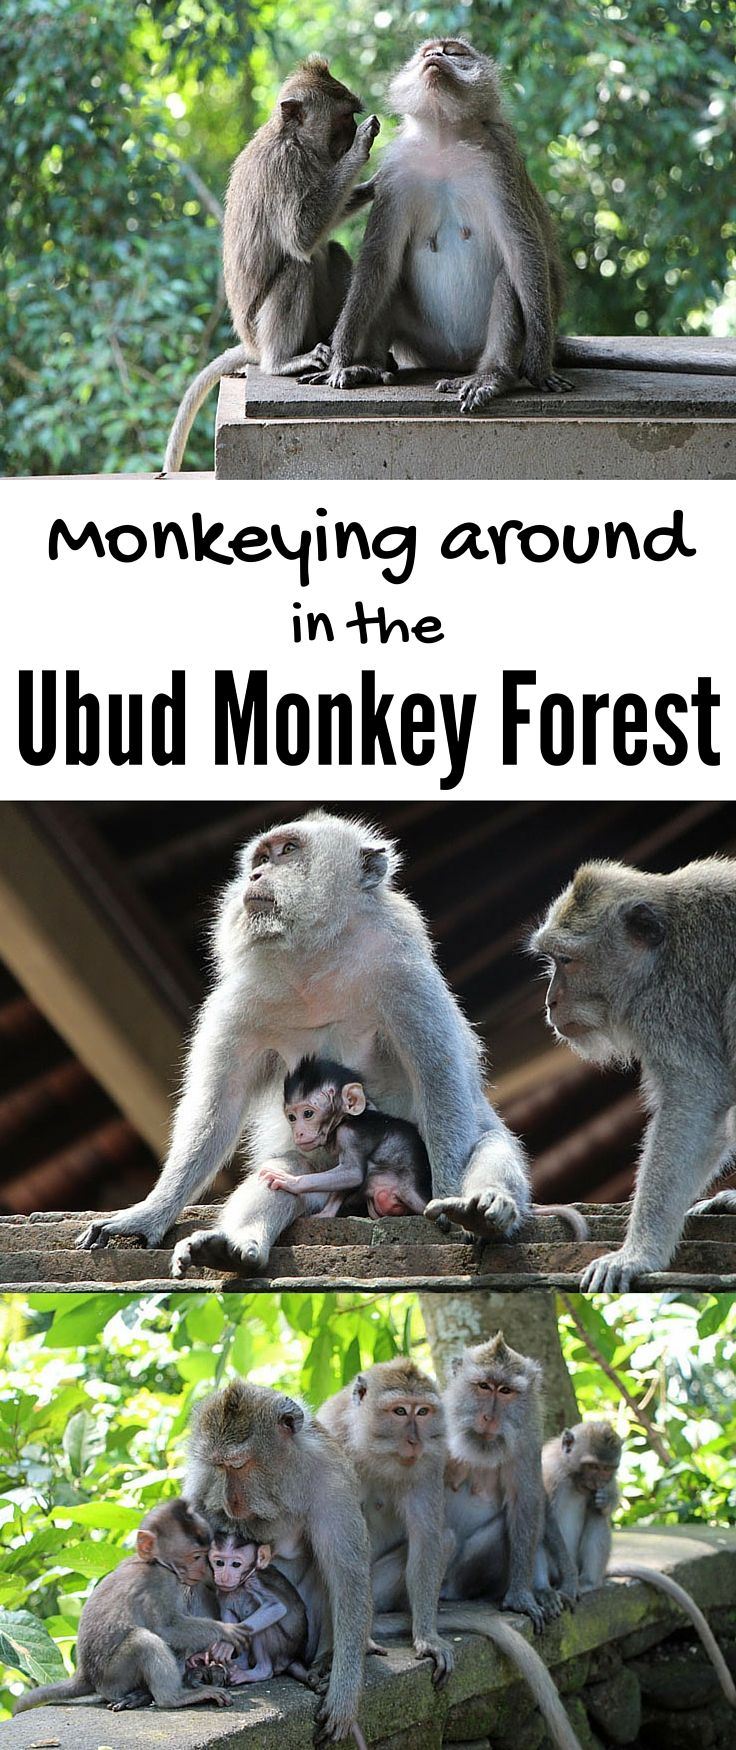 UBUD, Bali   A lot of monkey business goes on at the Sacred Monkey Forest Sanctuary in Ubud, Bali. The shady forest is the jungle home to three 11th-century holy temples and over 550 cheeky long-tailed macaque monkeys. Watch your things (because the monke